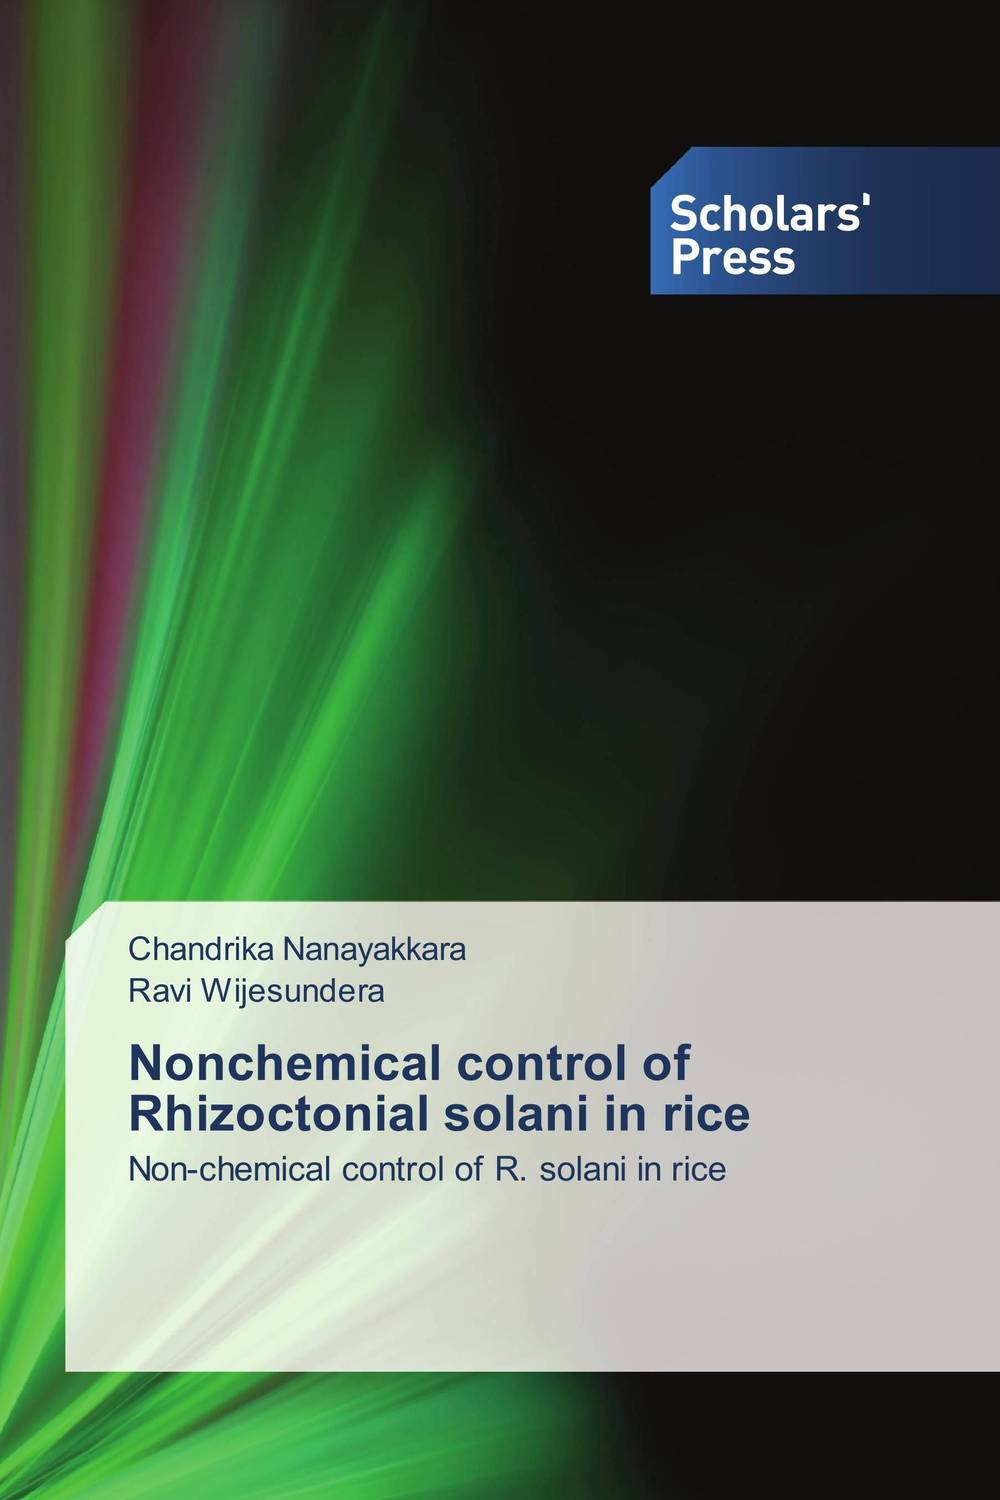 Nonchemical control of Rhizoctonial solani in rice brijesh yadav and rakesh kumar soil zinc fractions and nutritional composition of seeded rice